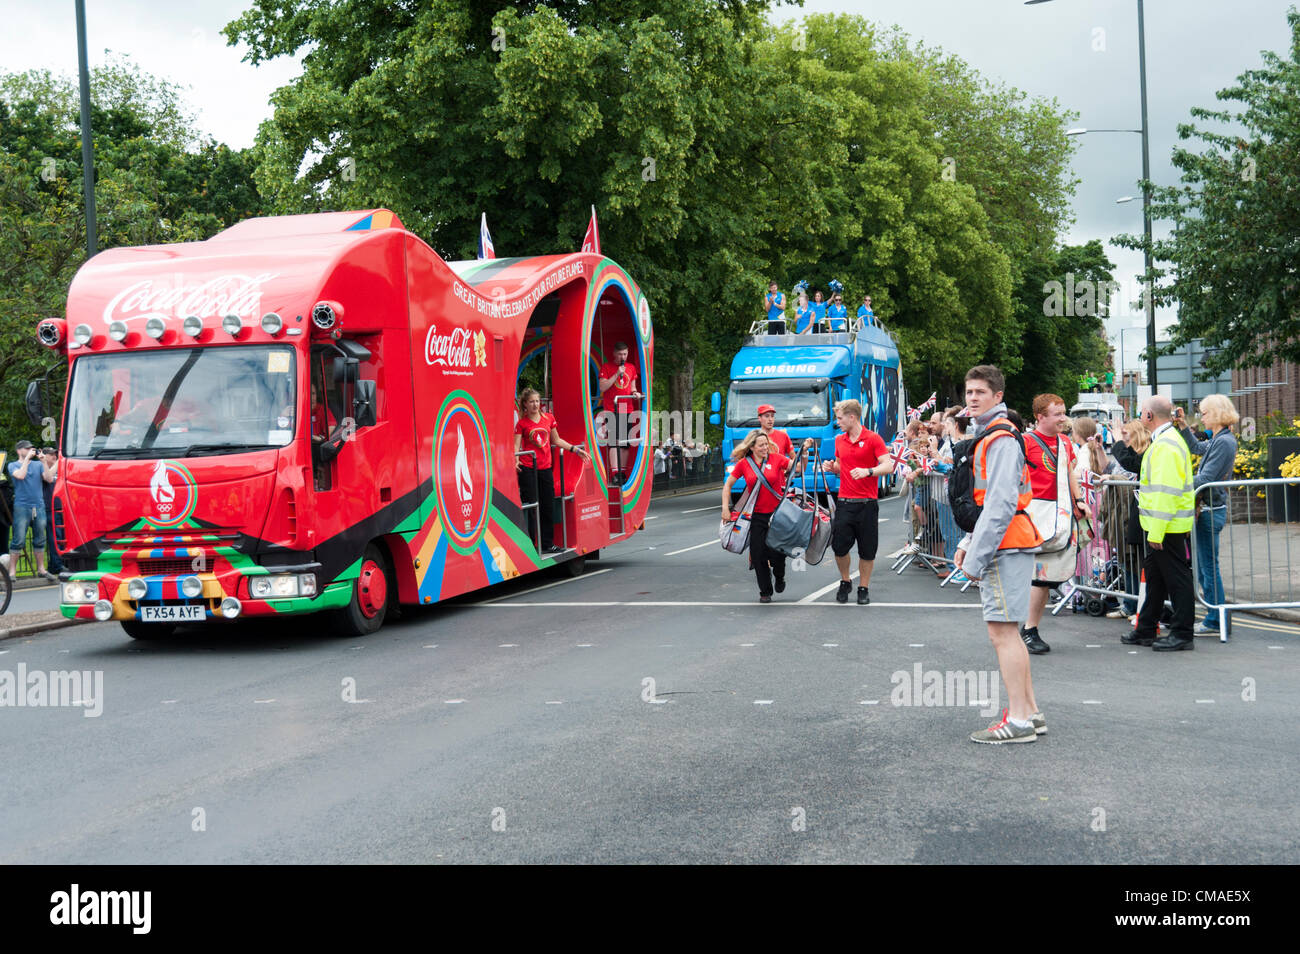 The Olympic Torch comes to Kings Lynn Norfolk July 4th 2012. The Coca Cola and Samsung sponsor vehicles drive along - Stock Image